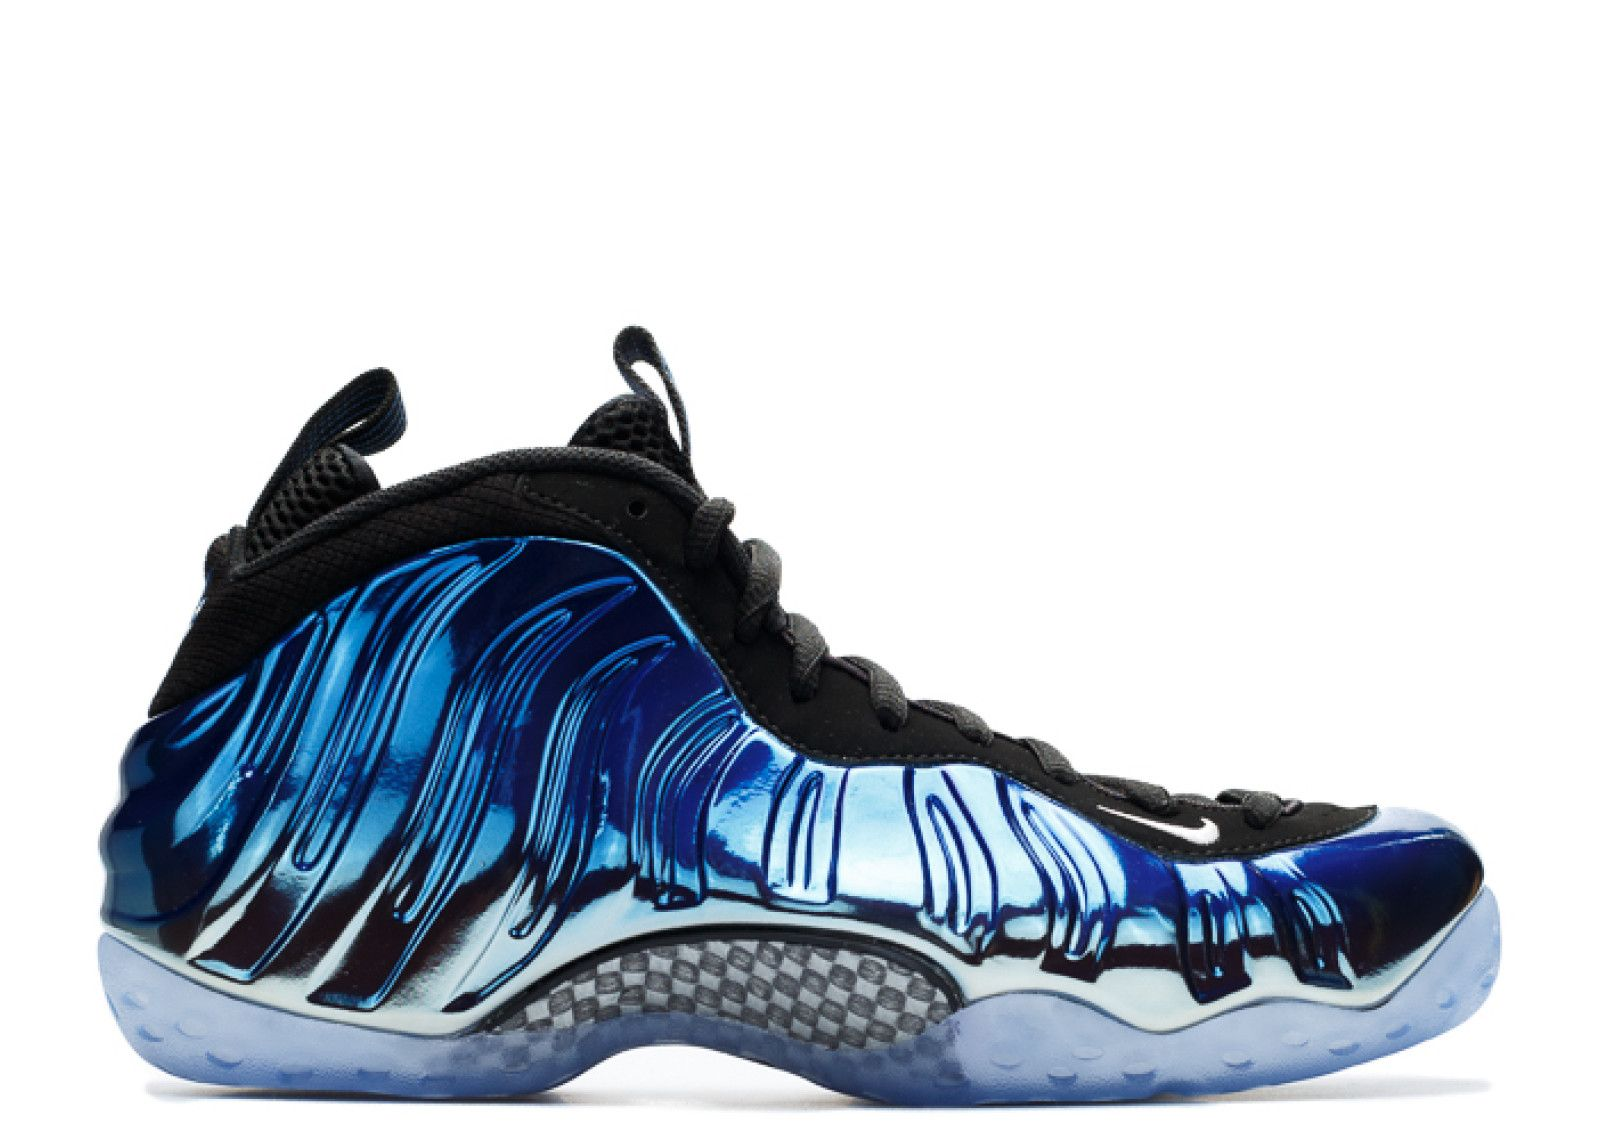 356a53686a6 Super HOT Nike Air Foamposite One Prm